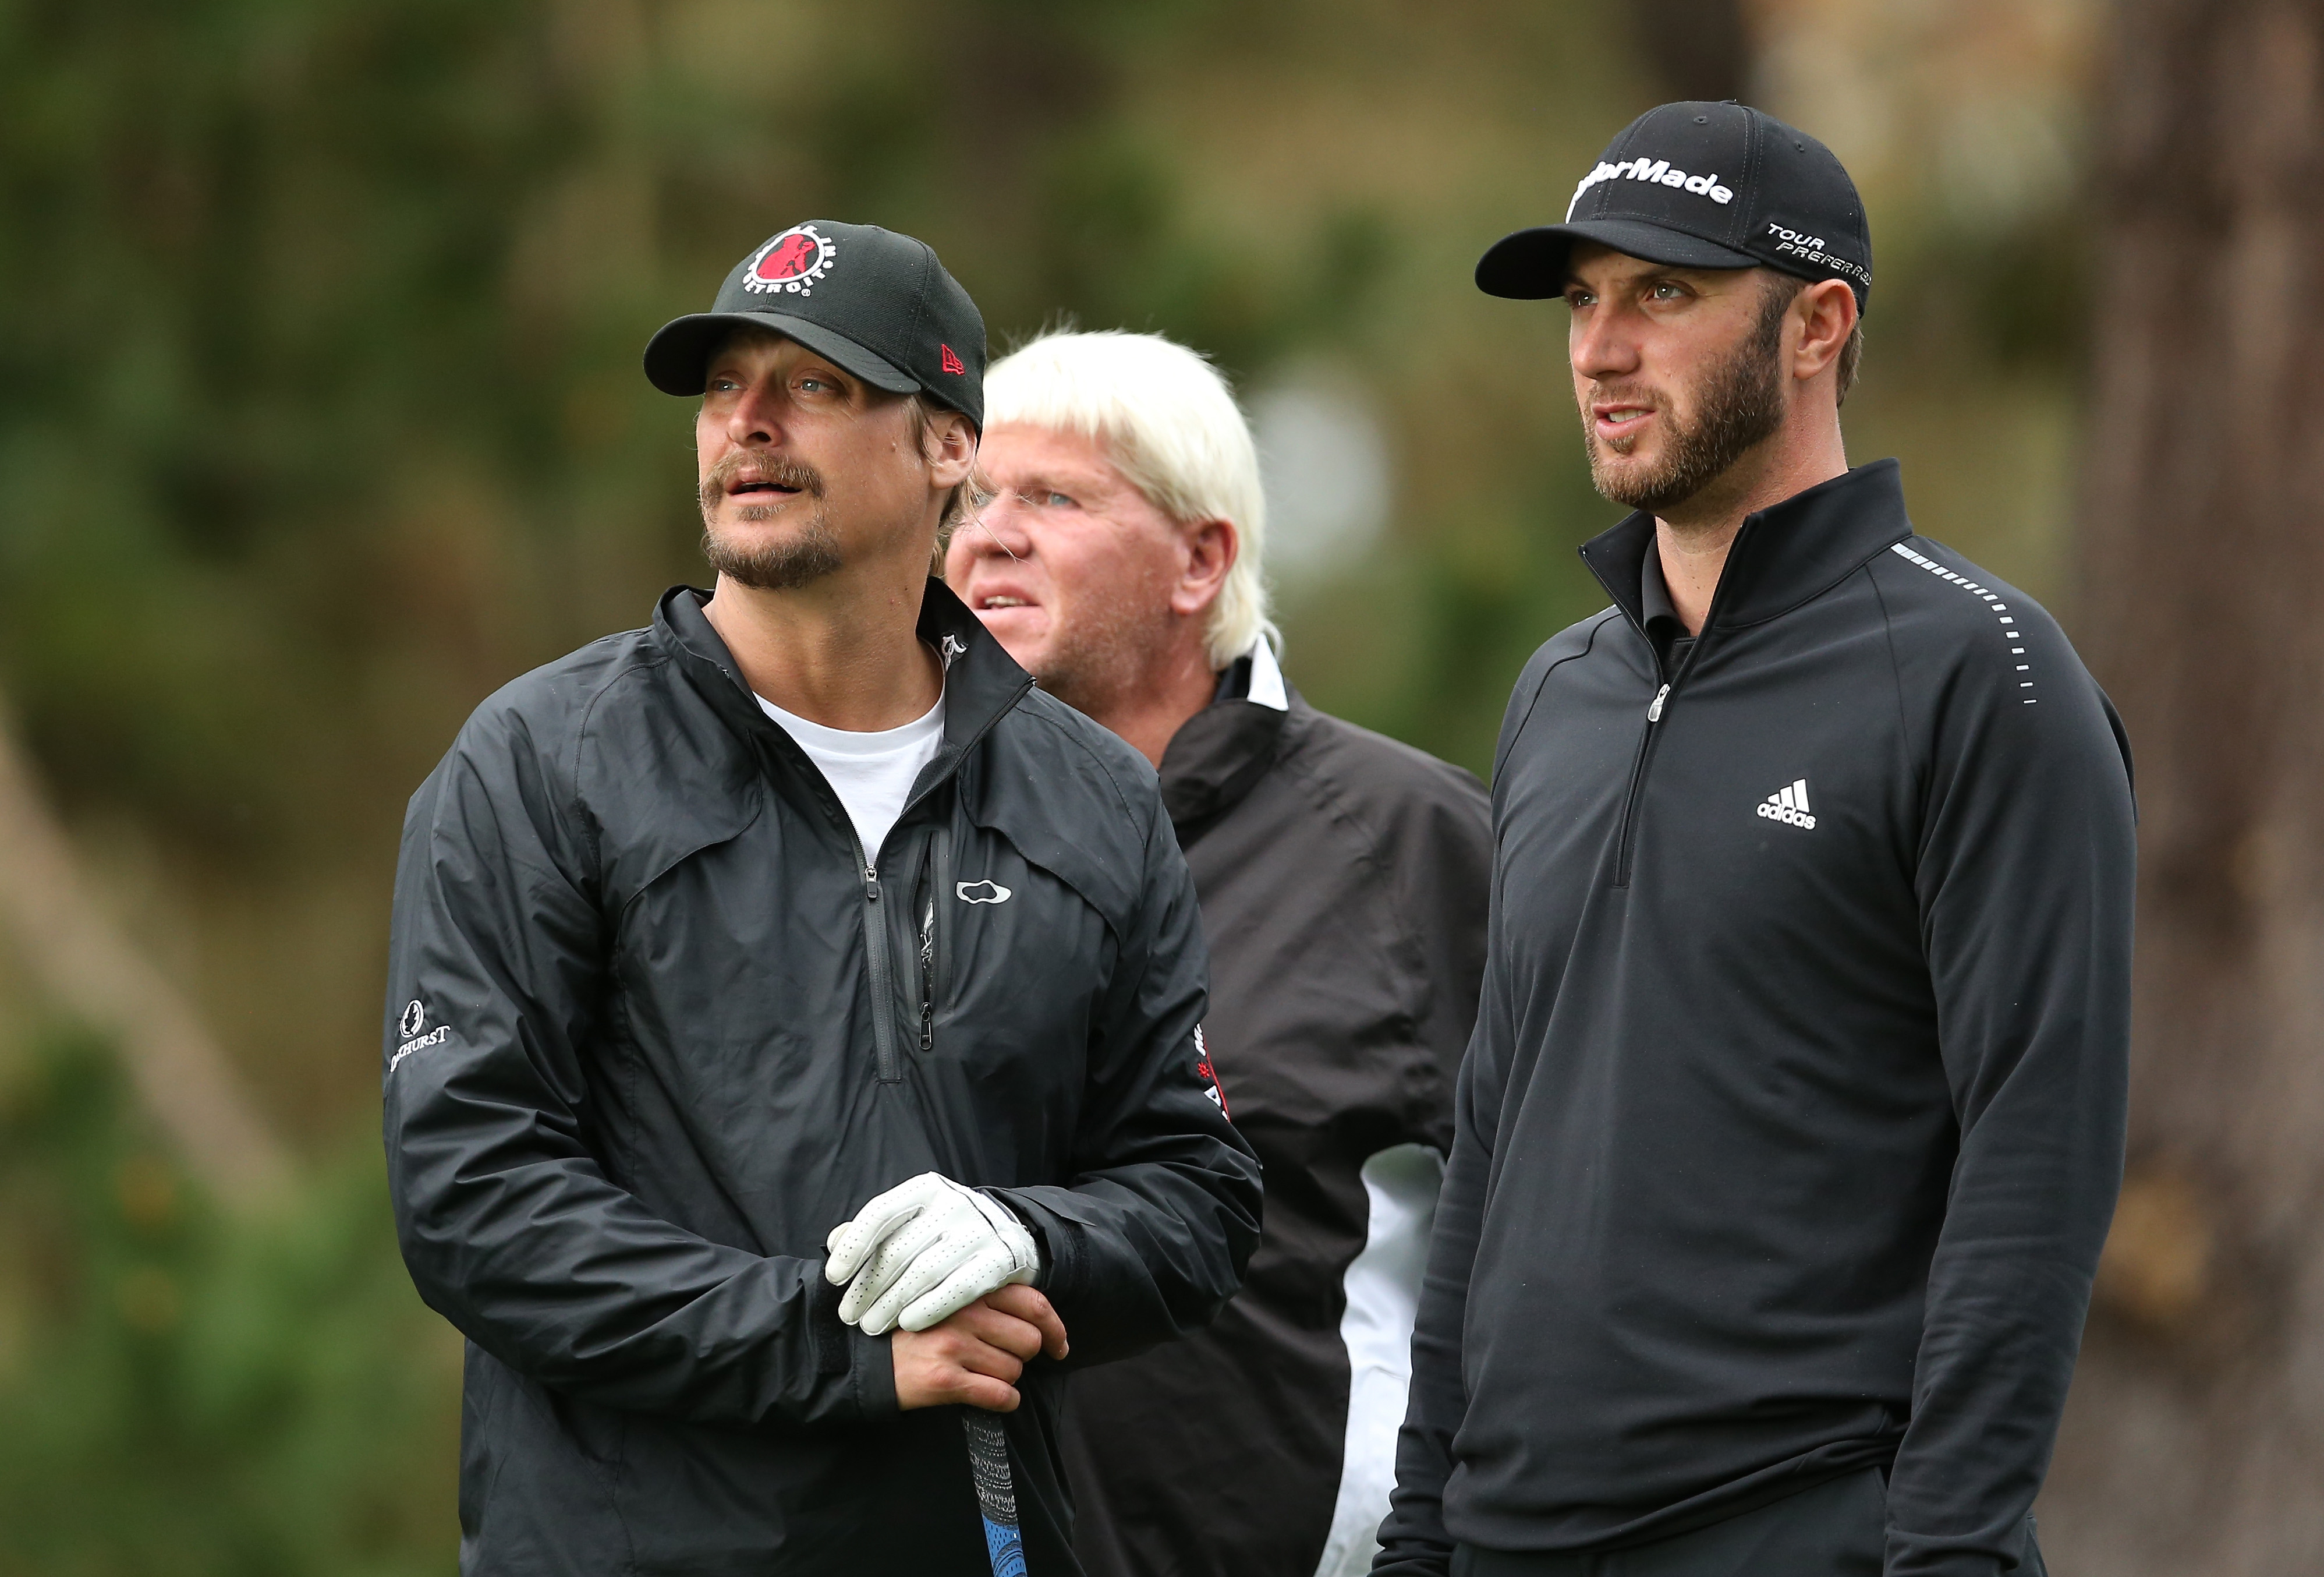 Kid Rock, John Daly, and Dustin Johnson